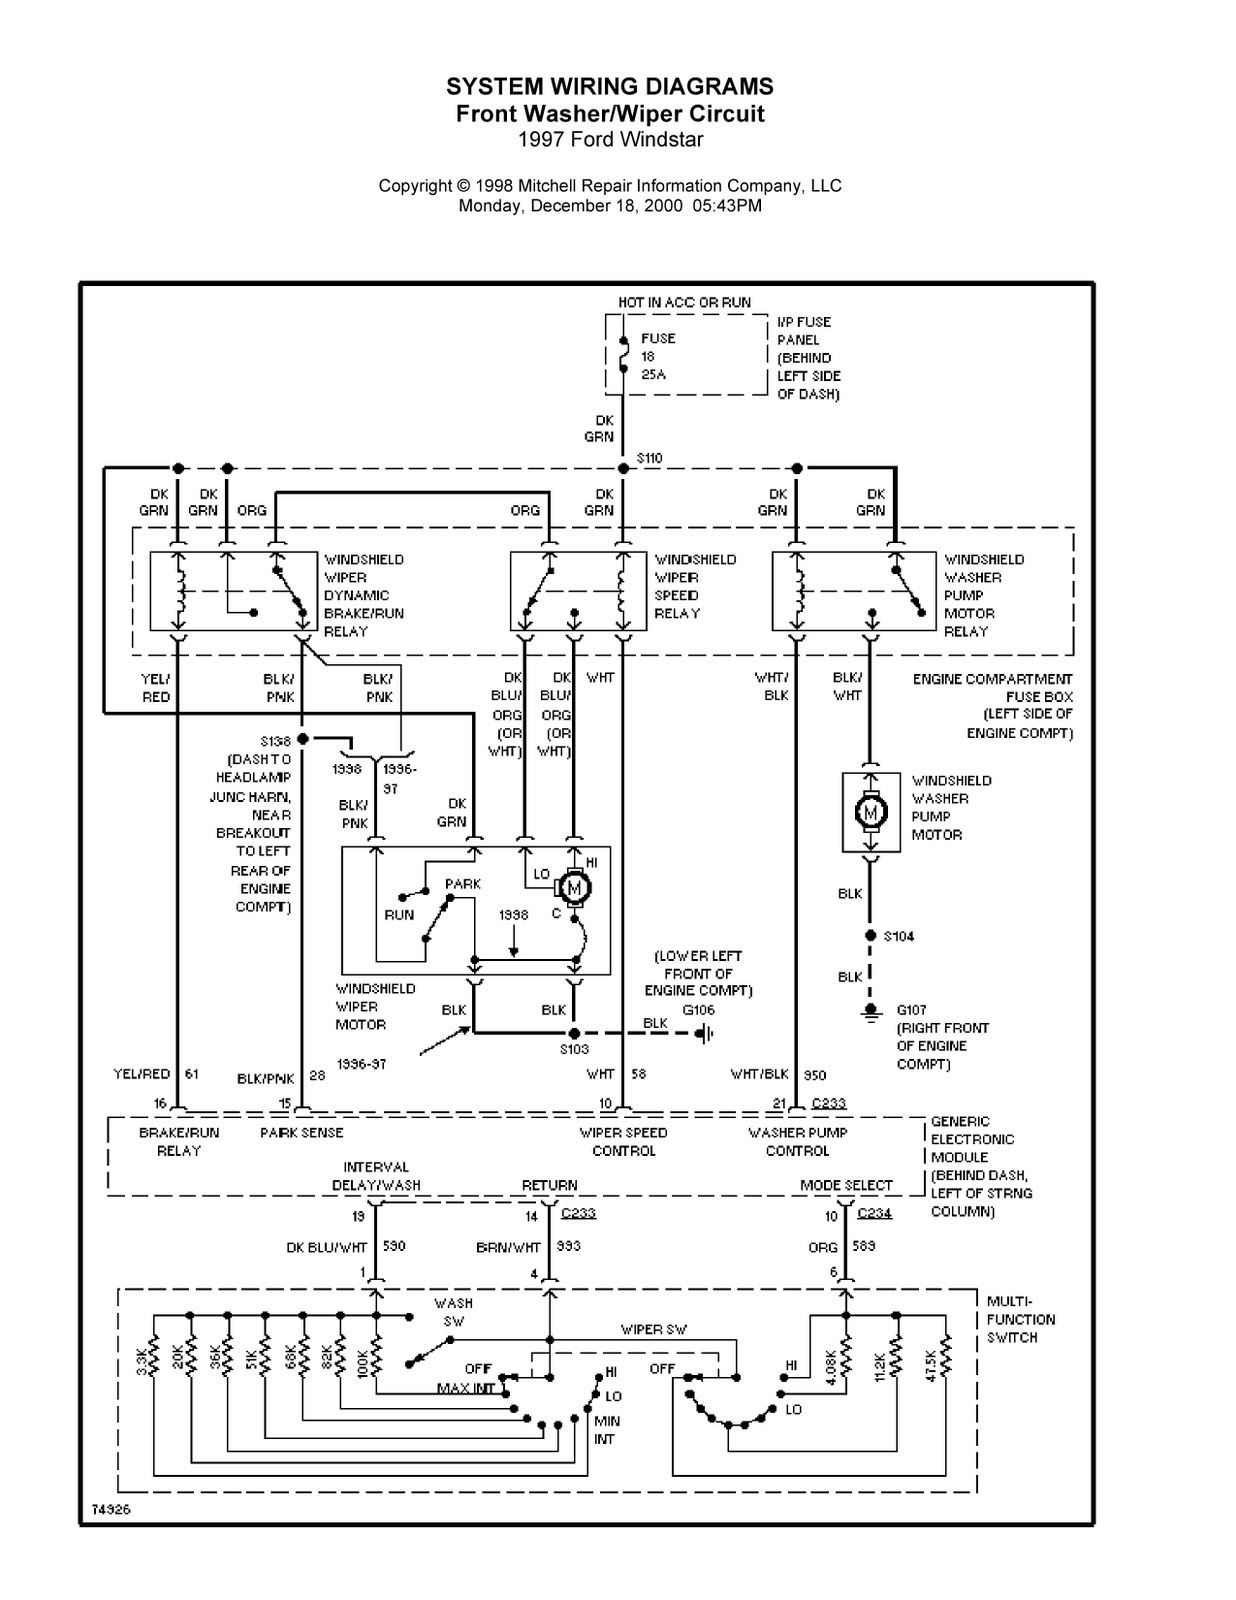 1997 Windstar Wiring Diagram Another Blog About 2000 Free Picture Schematic Ford Complete System Diagrams